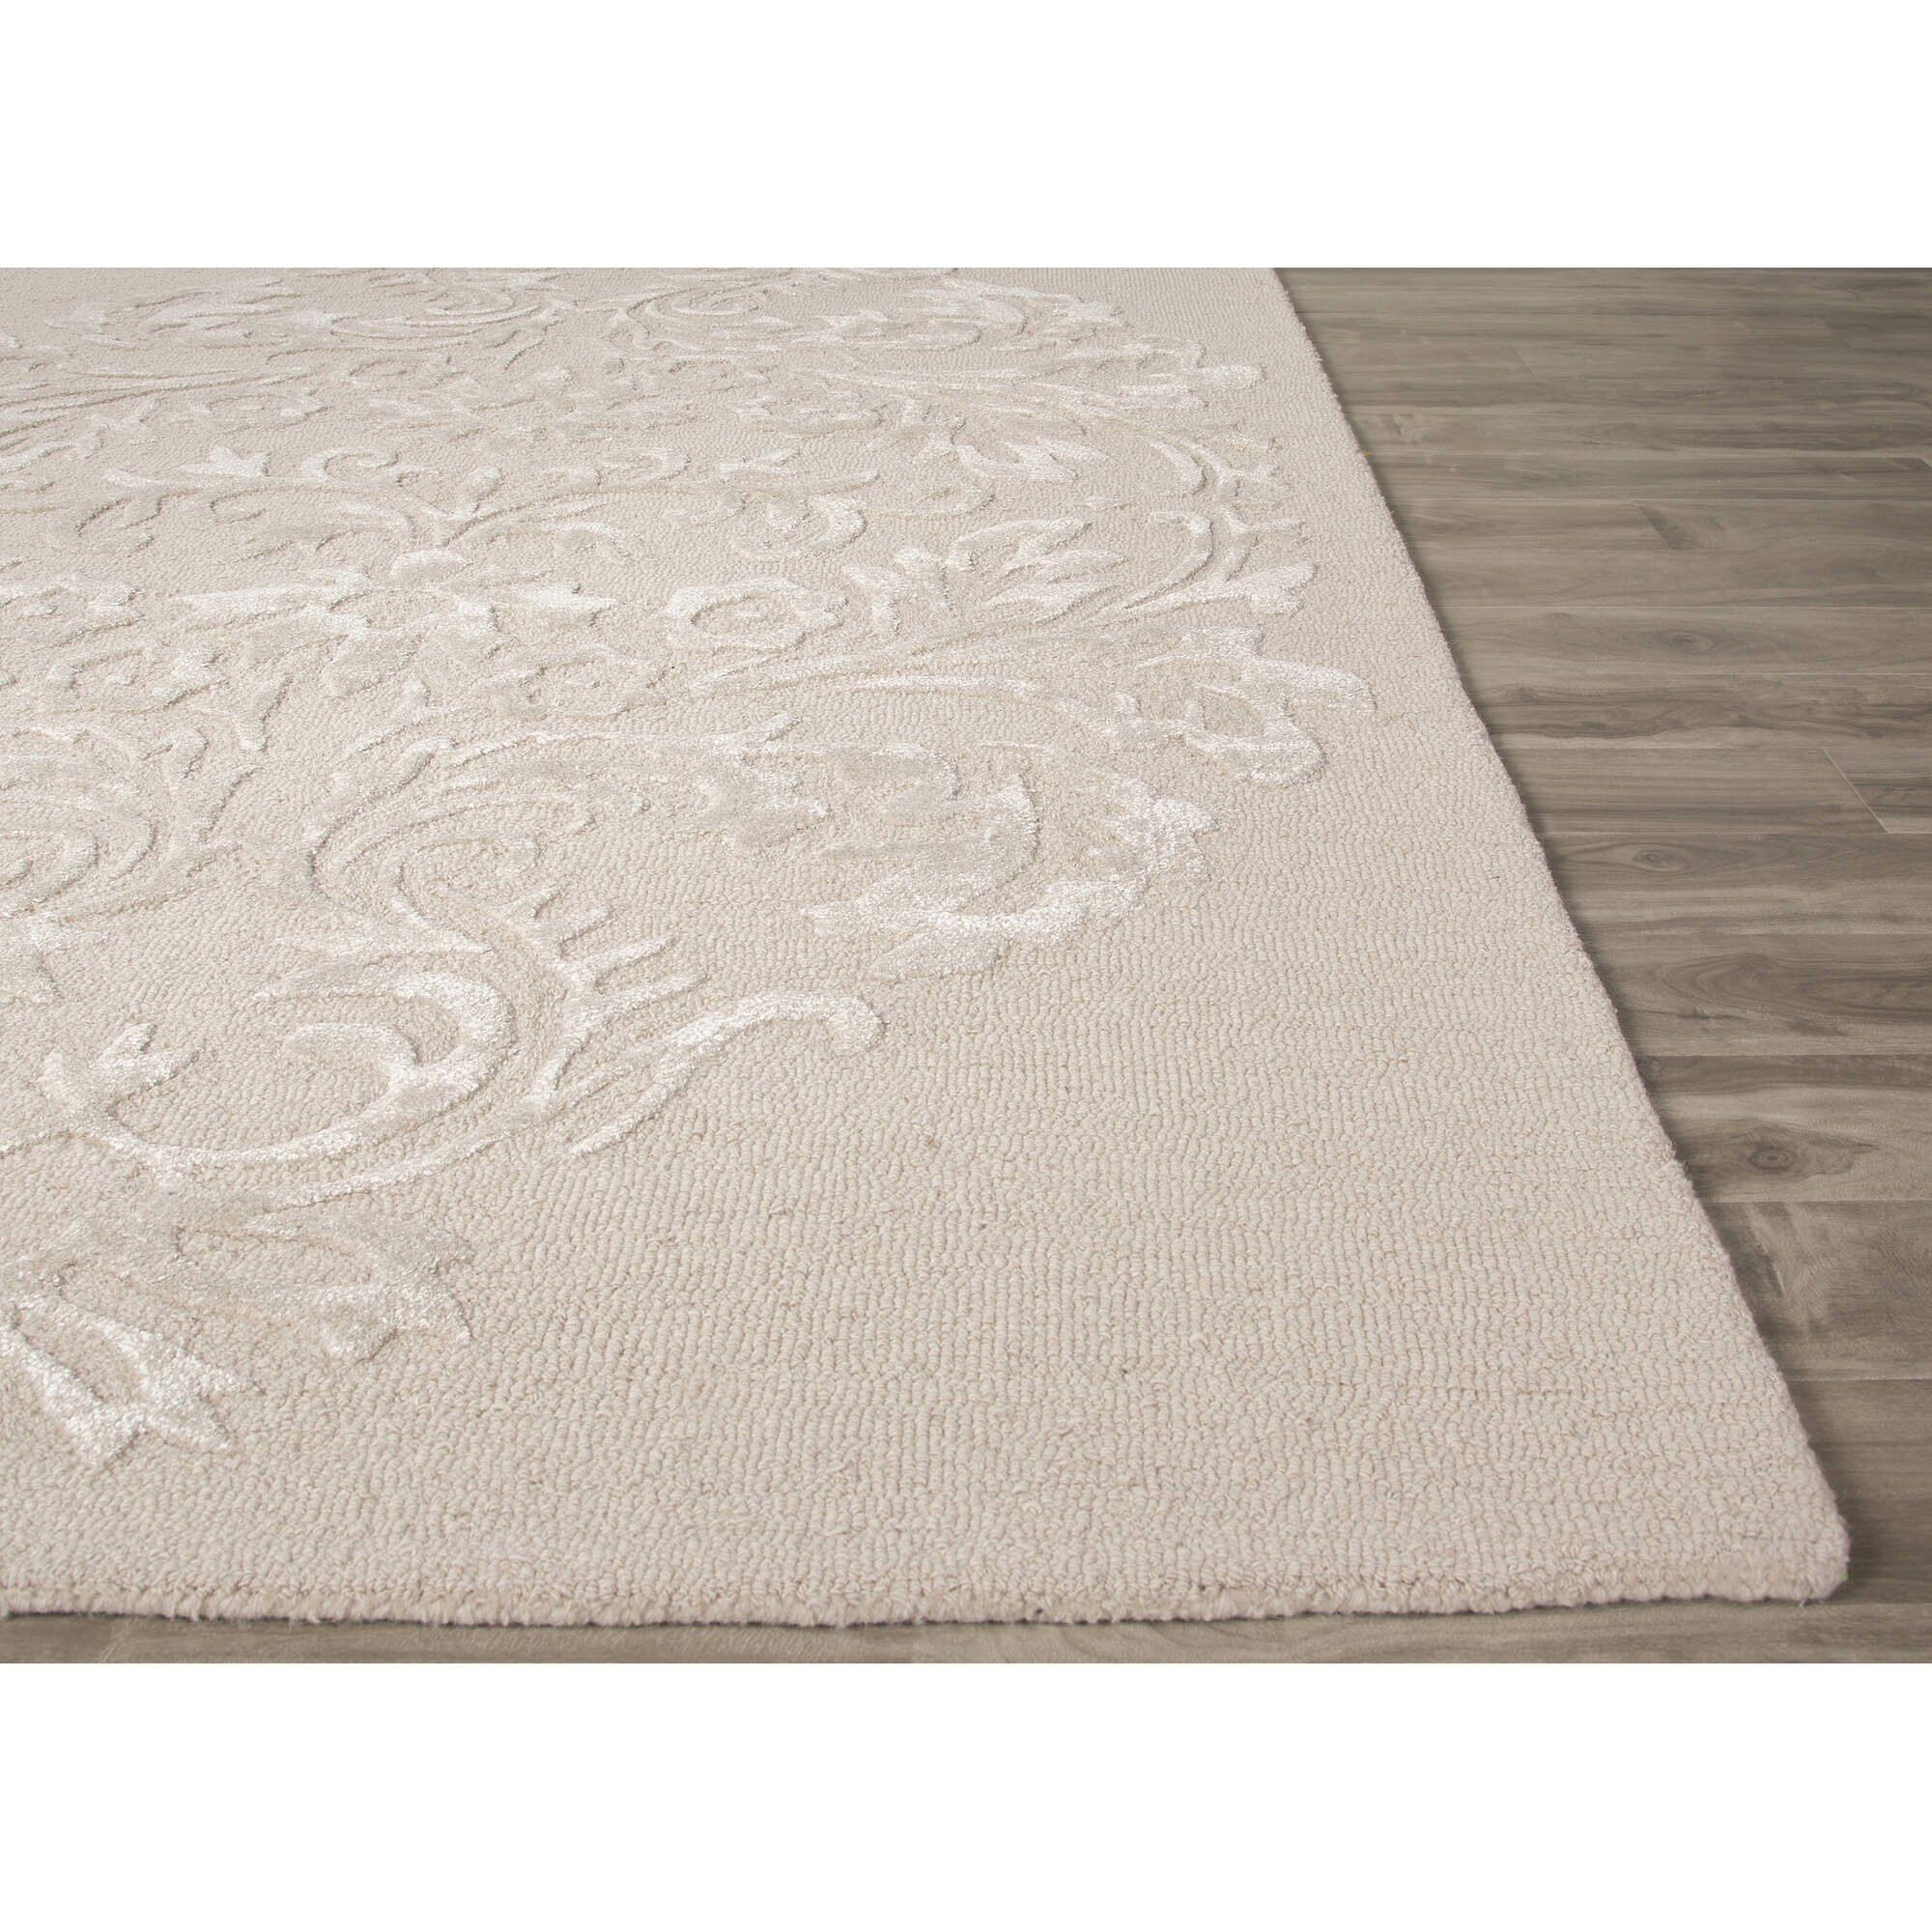 JaipurLiving Crossley Hand-Tufted Ivory/White Area Rug